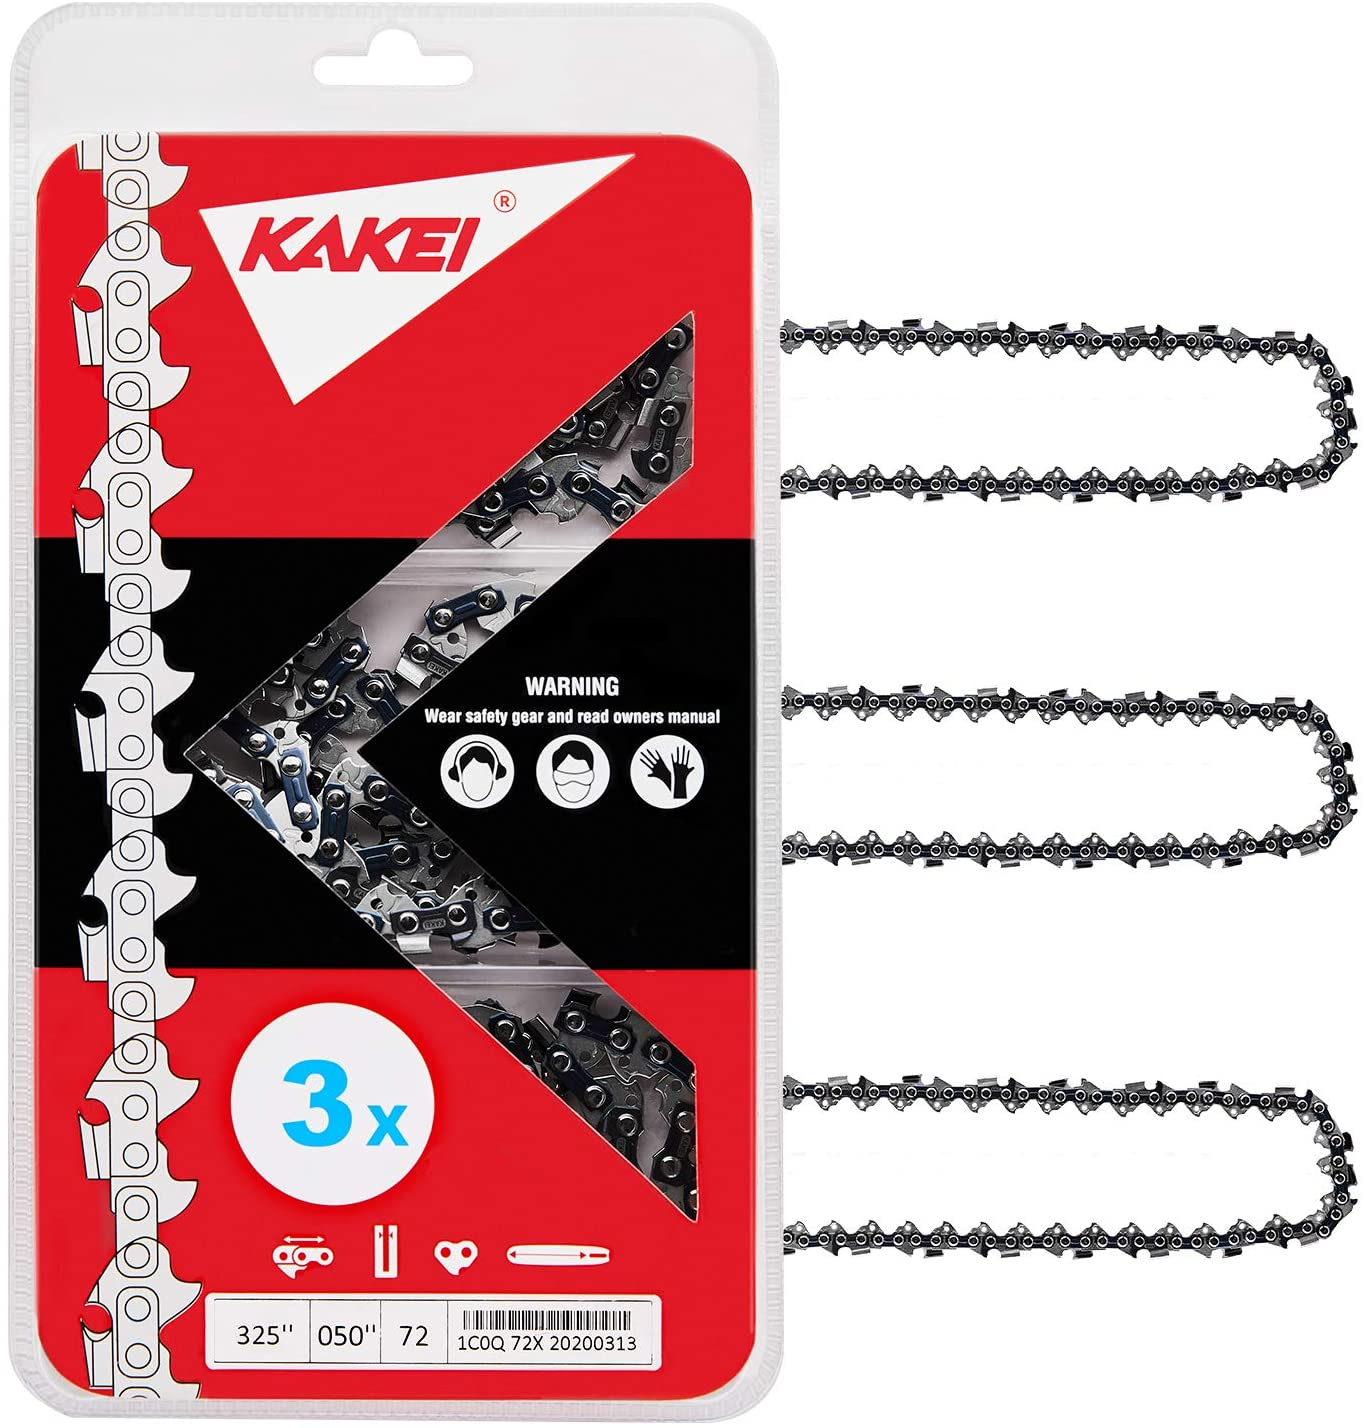 Best Chainsaw Chains For Cutting Firewood/Hardwood 2021 8